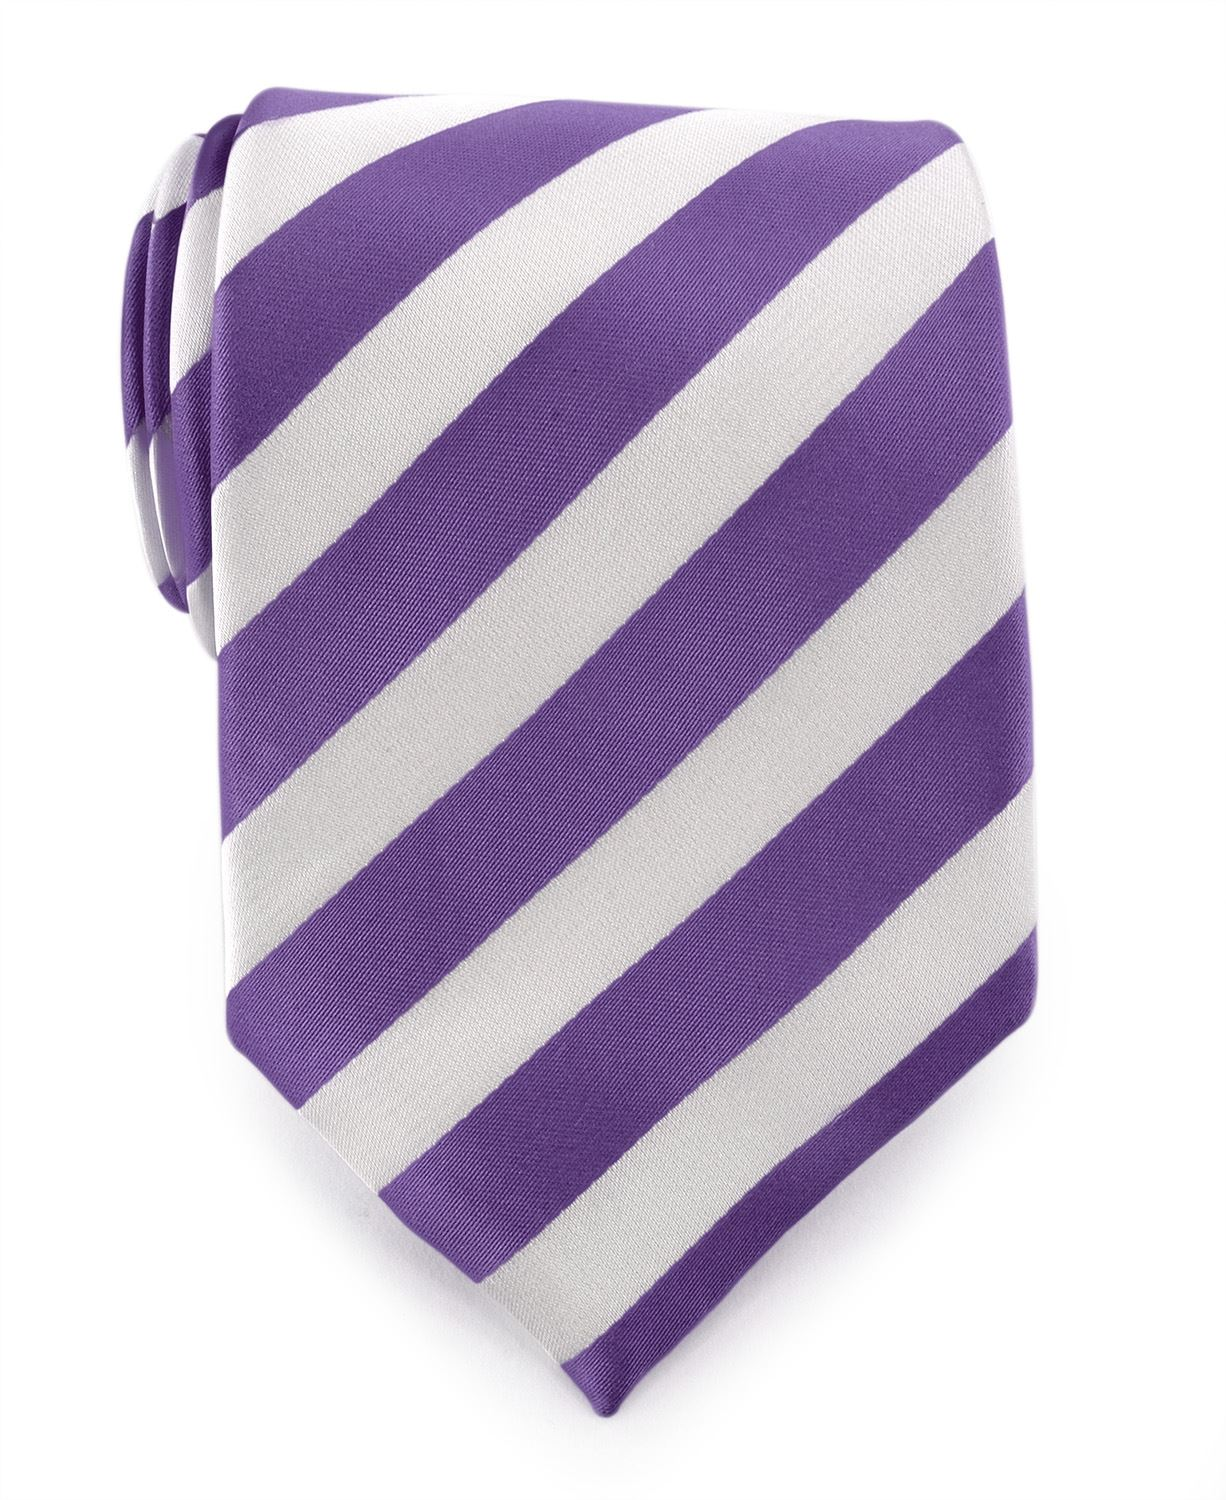 Uomo Vennetto Men's Lilac and White College Stripe Woven Polyester Tie and Handkerchief Set